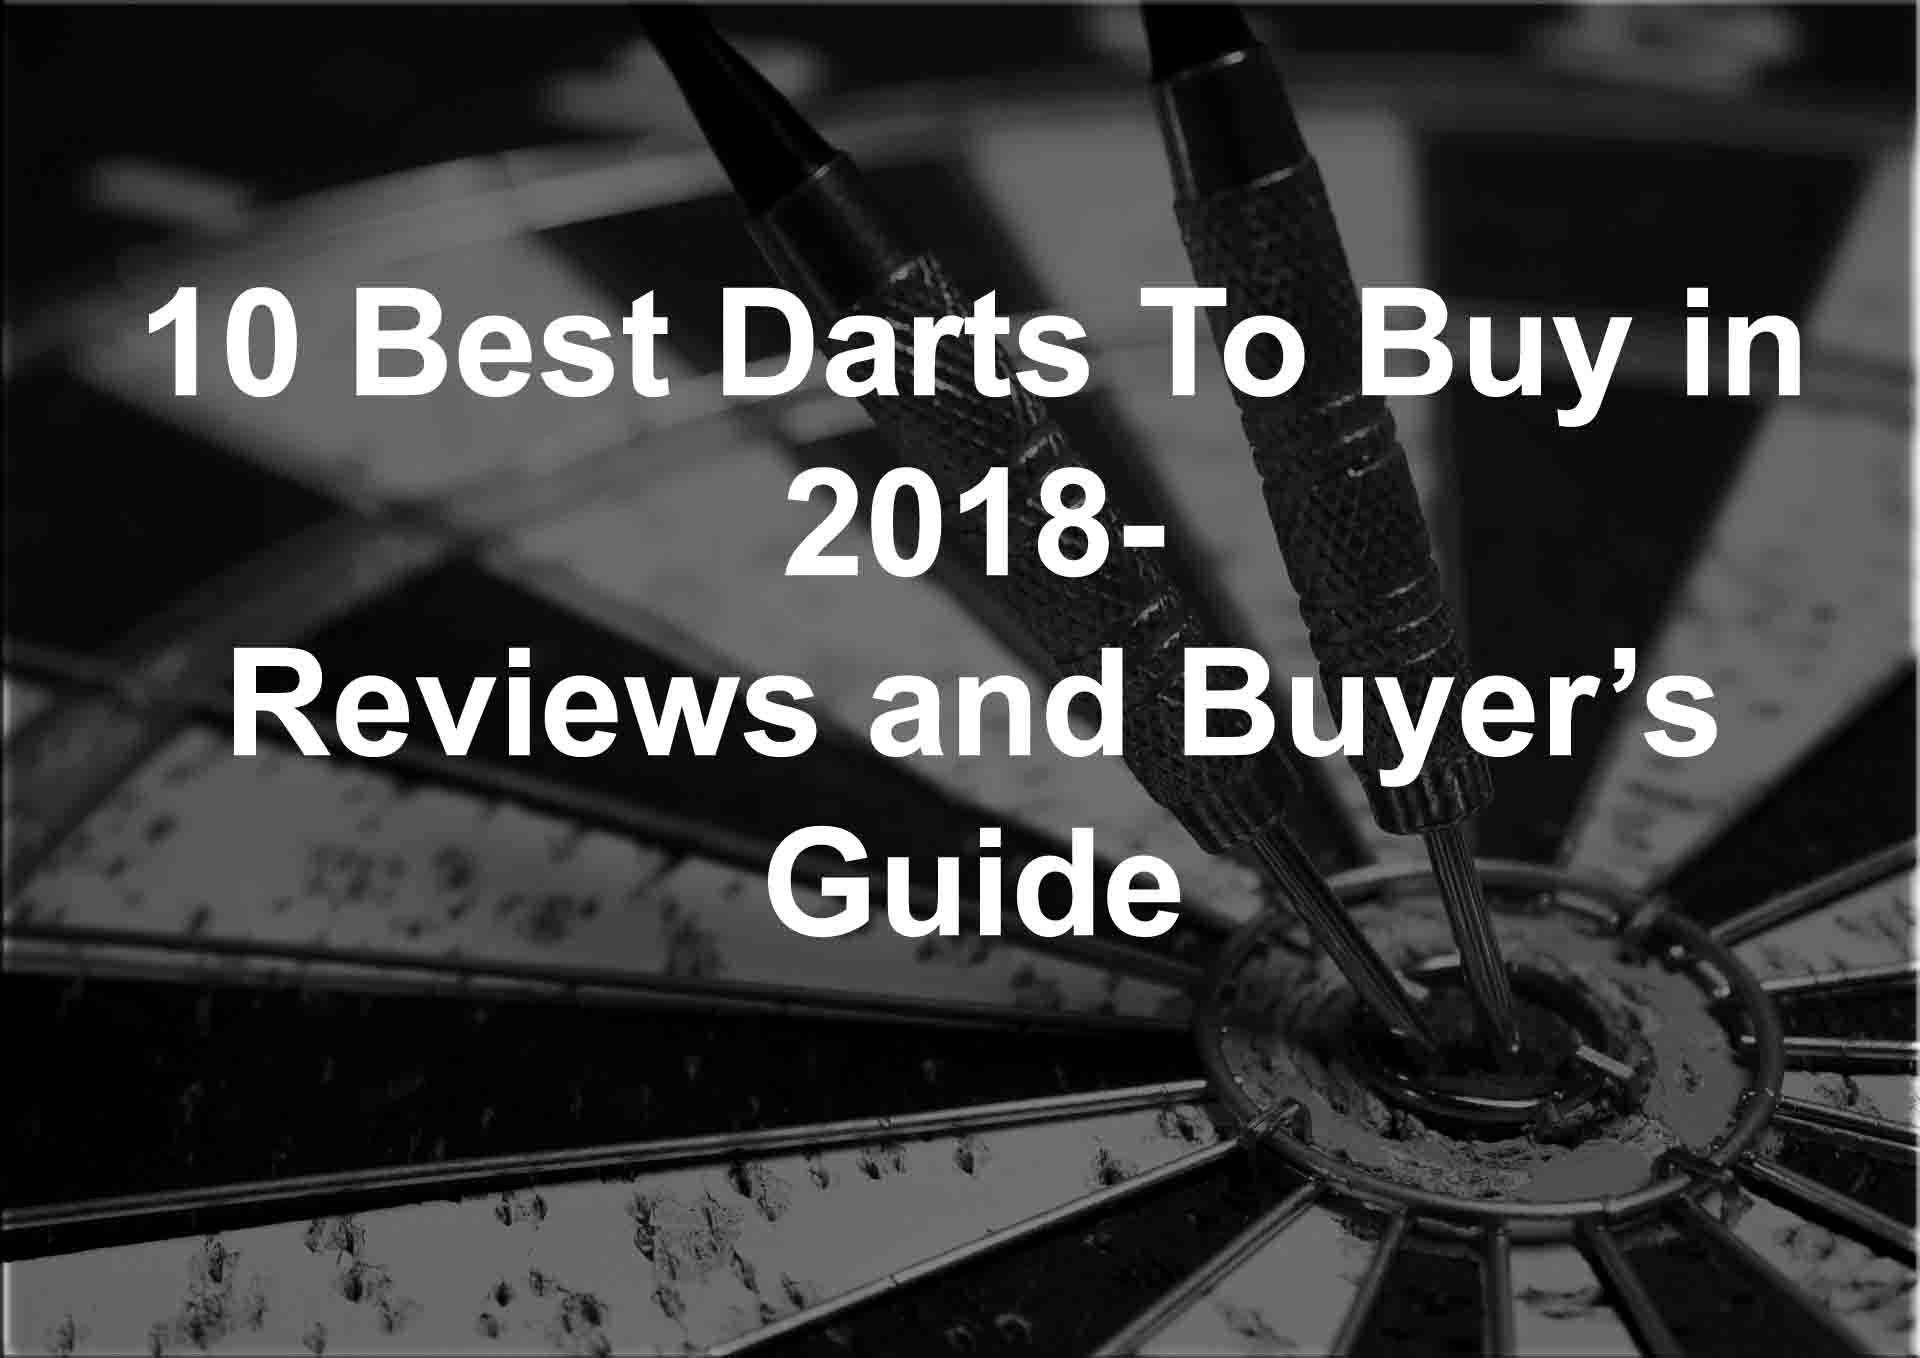 10 Best Darts To Buy In 2018 – Reviews And Buyer Guide